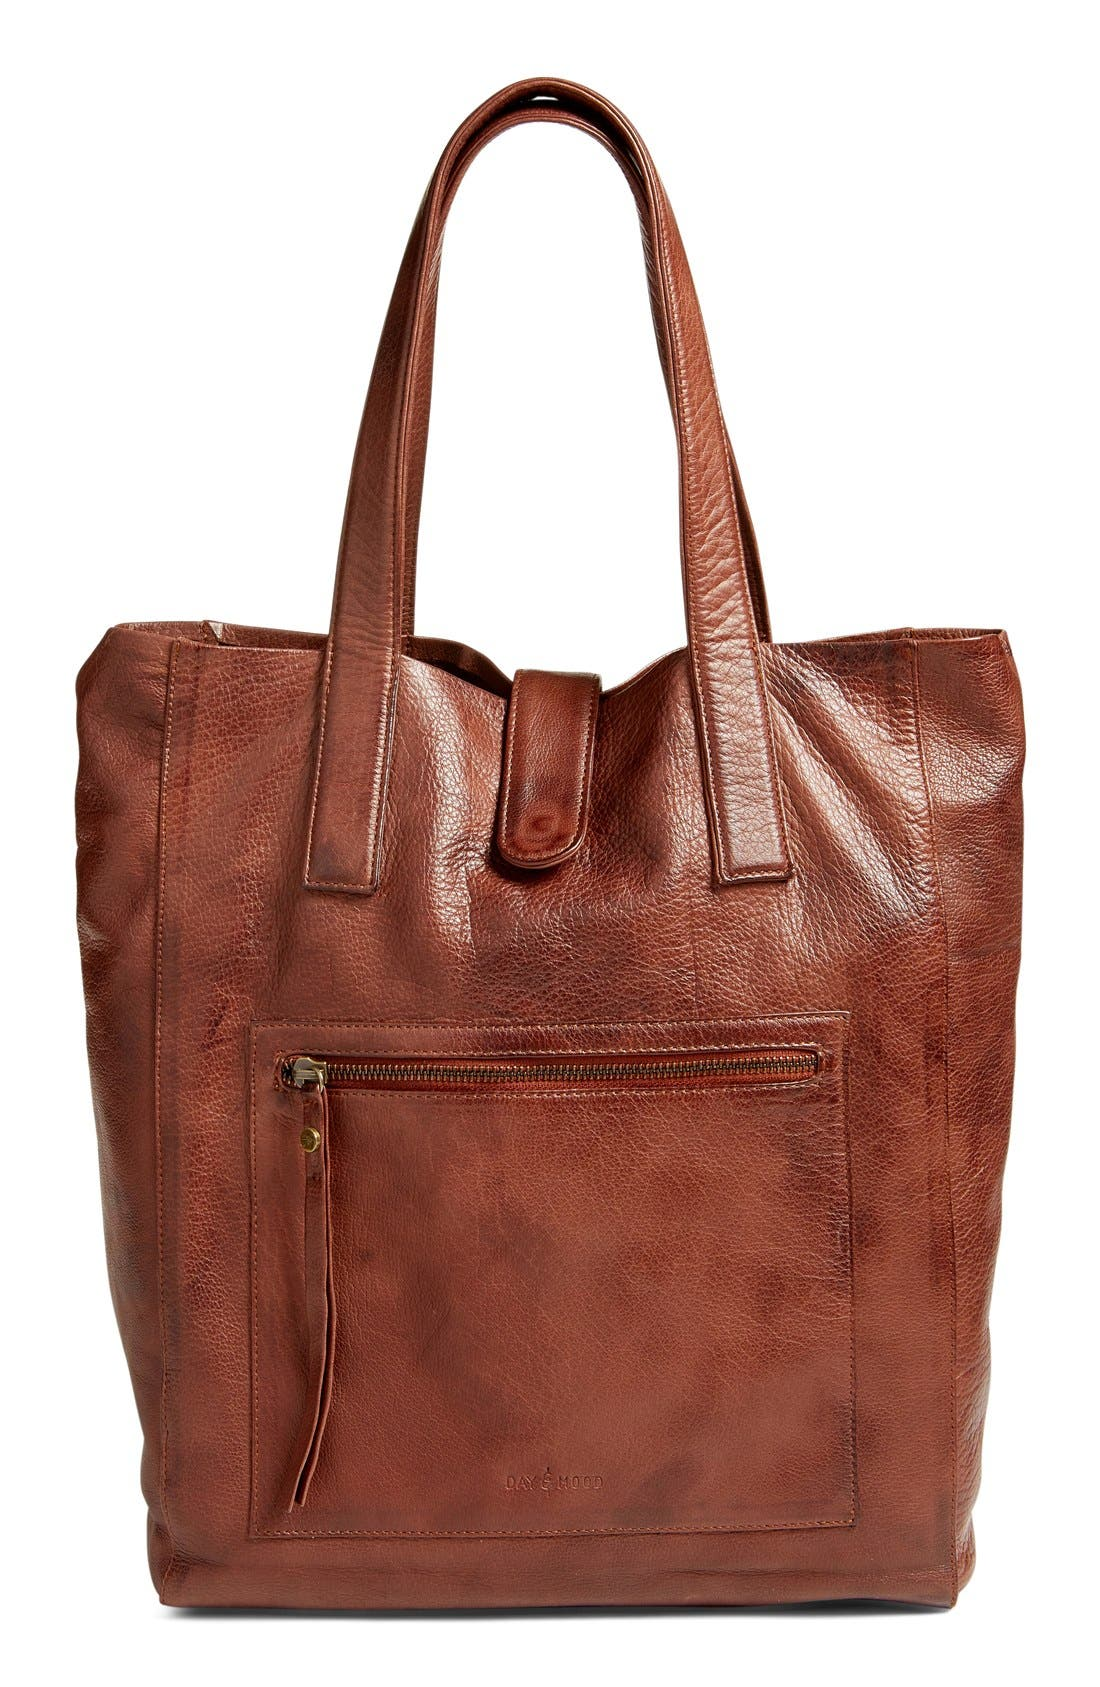 Alternate Image 1 Selected - DAY & MOOD 'Nola' Leather Tote